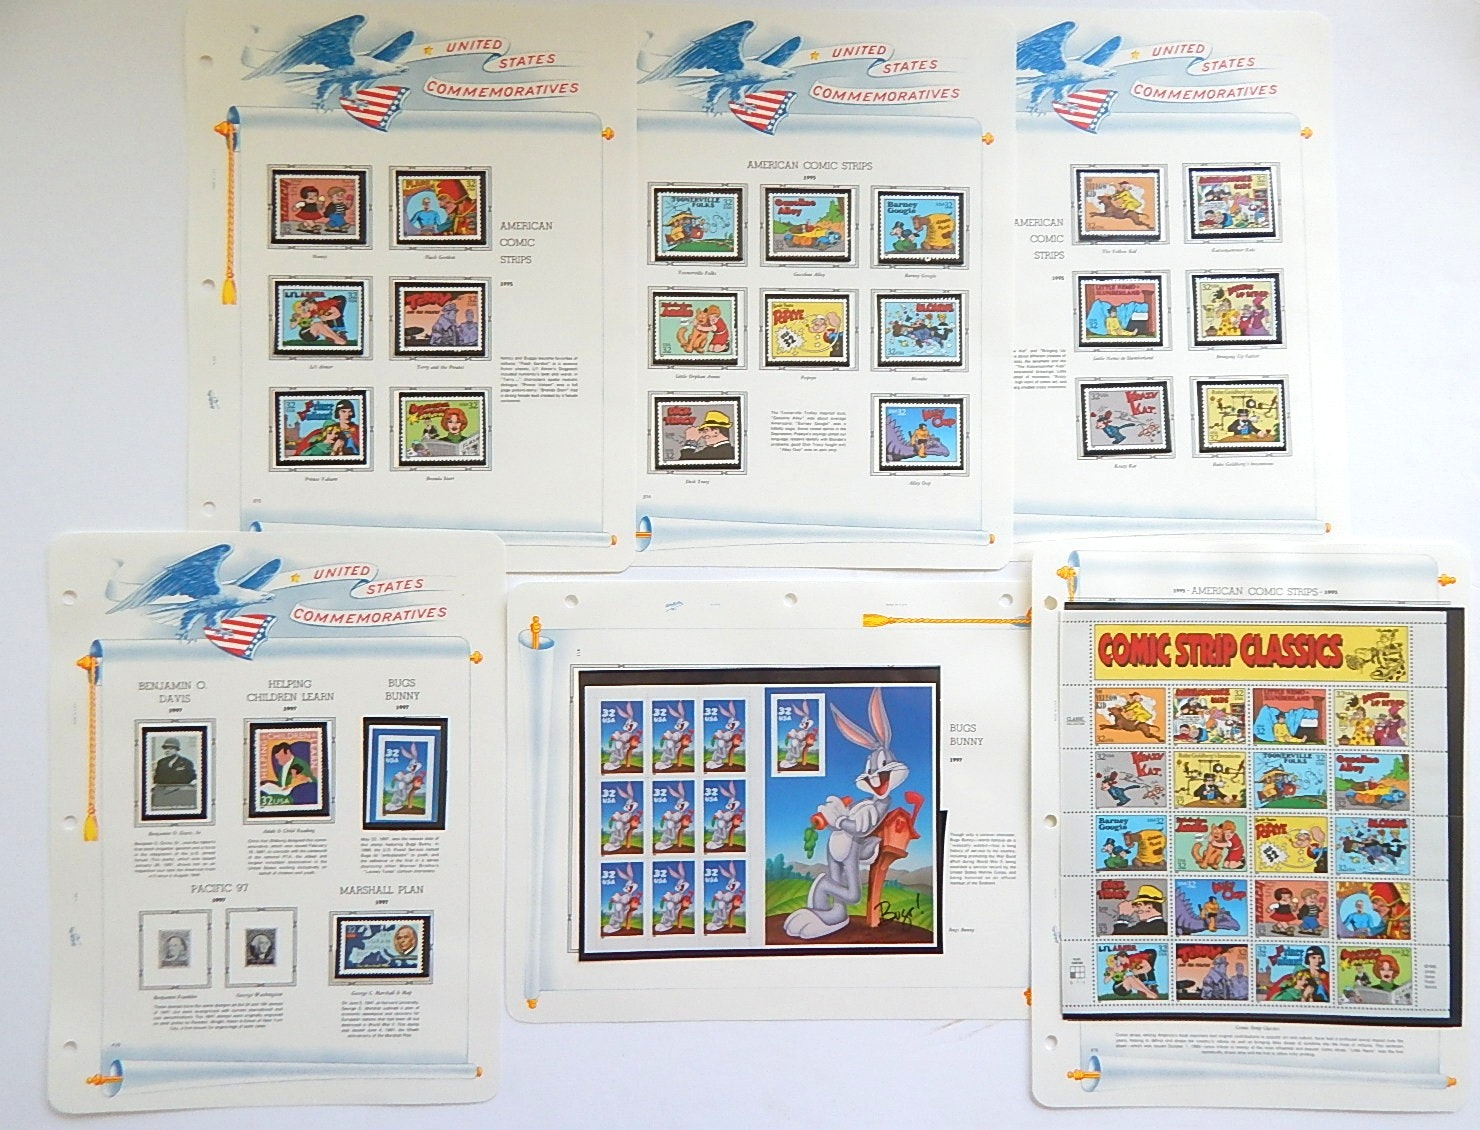 United States Commemorative Stamps with Comic Strips, Bugs Bunny, More